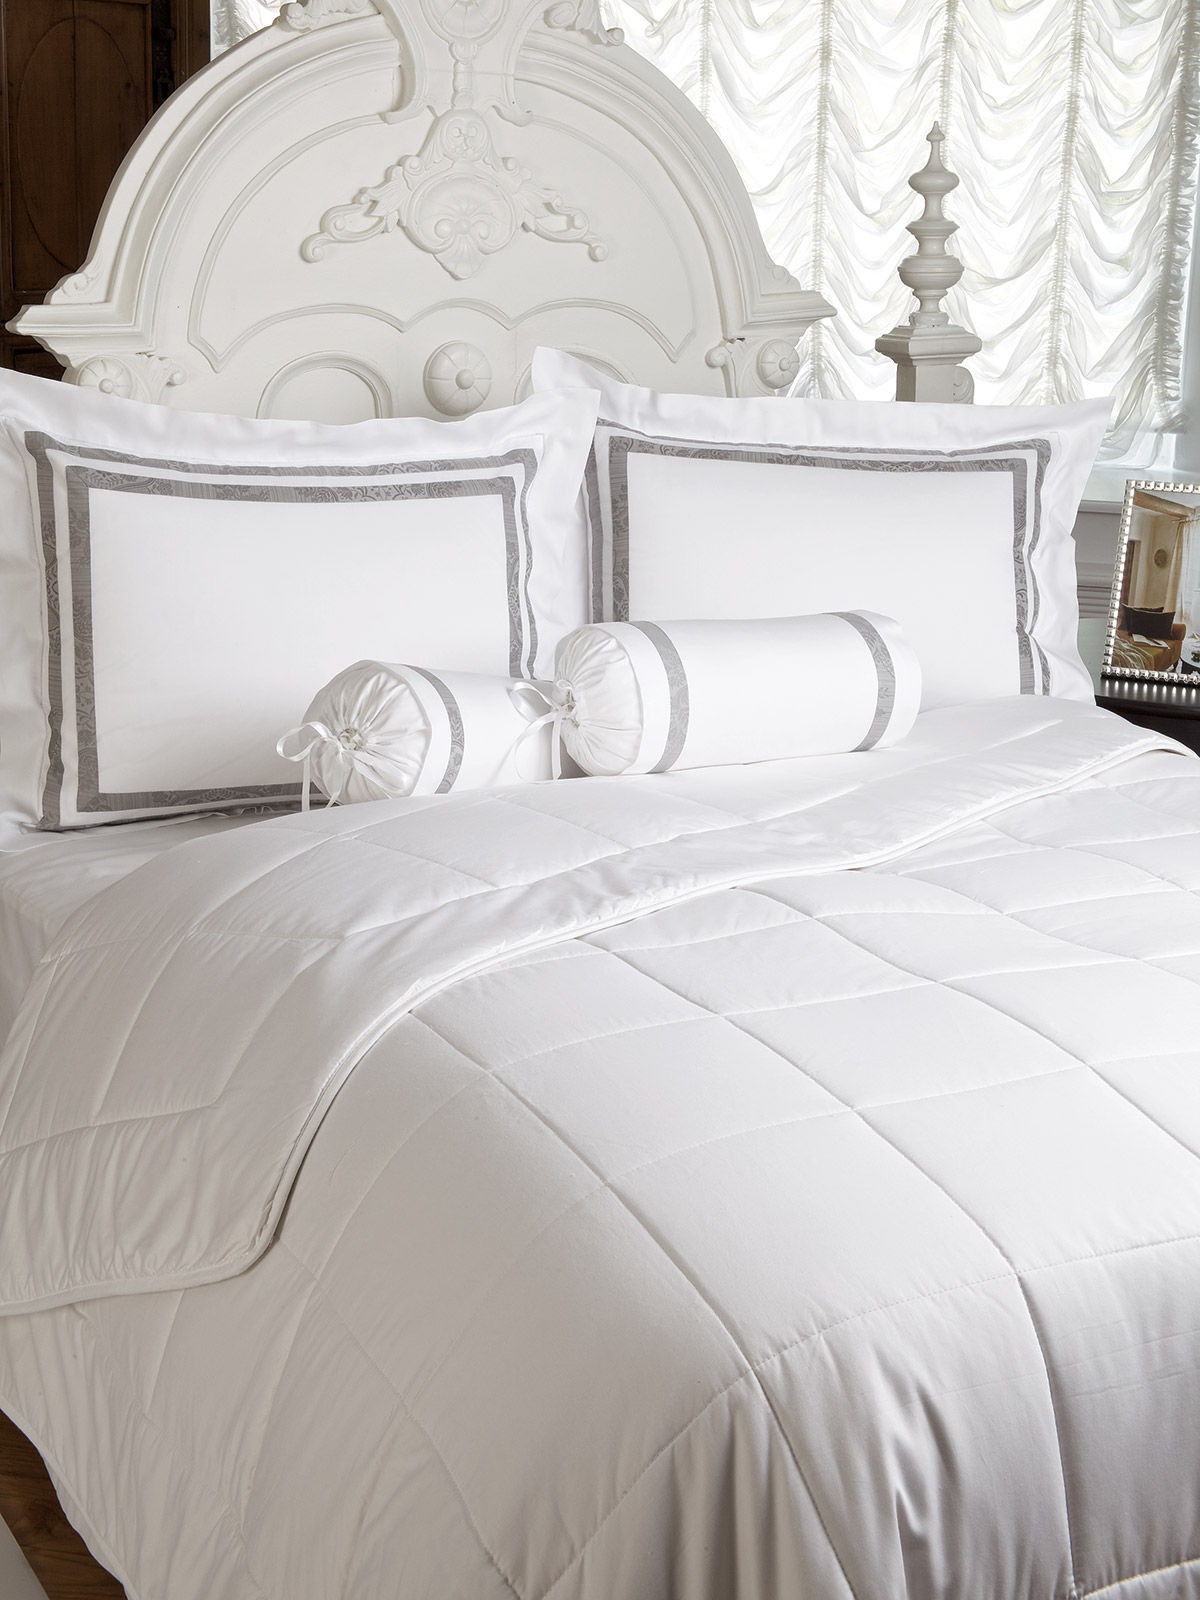 washable cottonfilled comforter  luxury comforters  luxury  - washable cottonfilled comforter